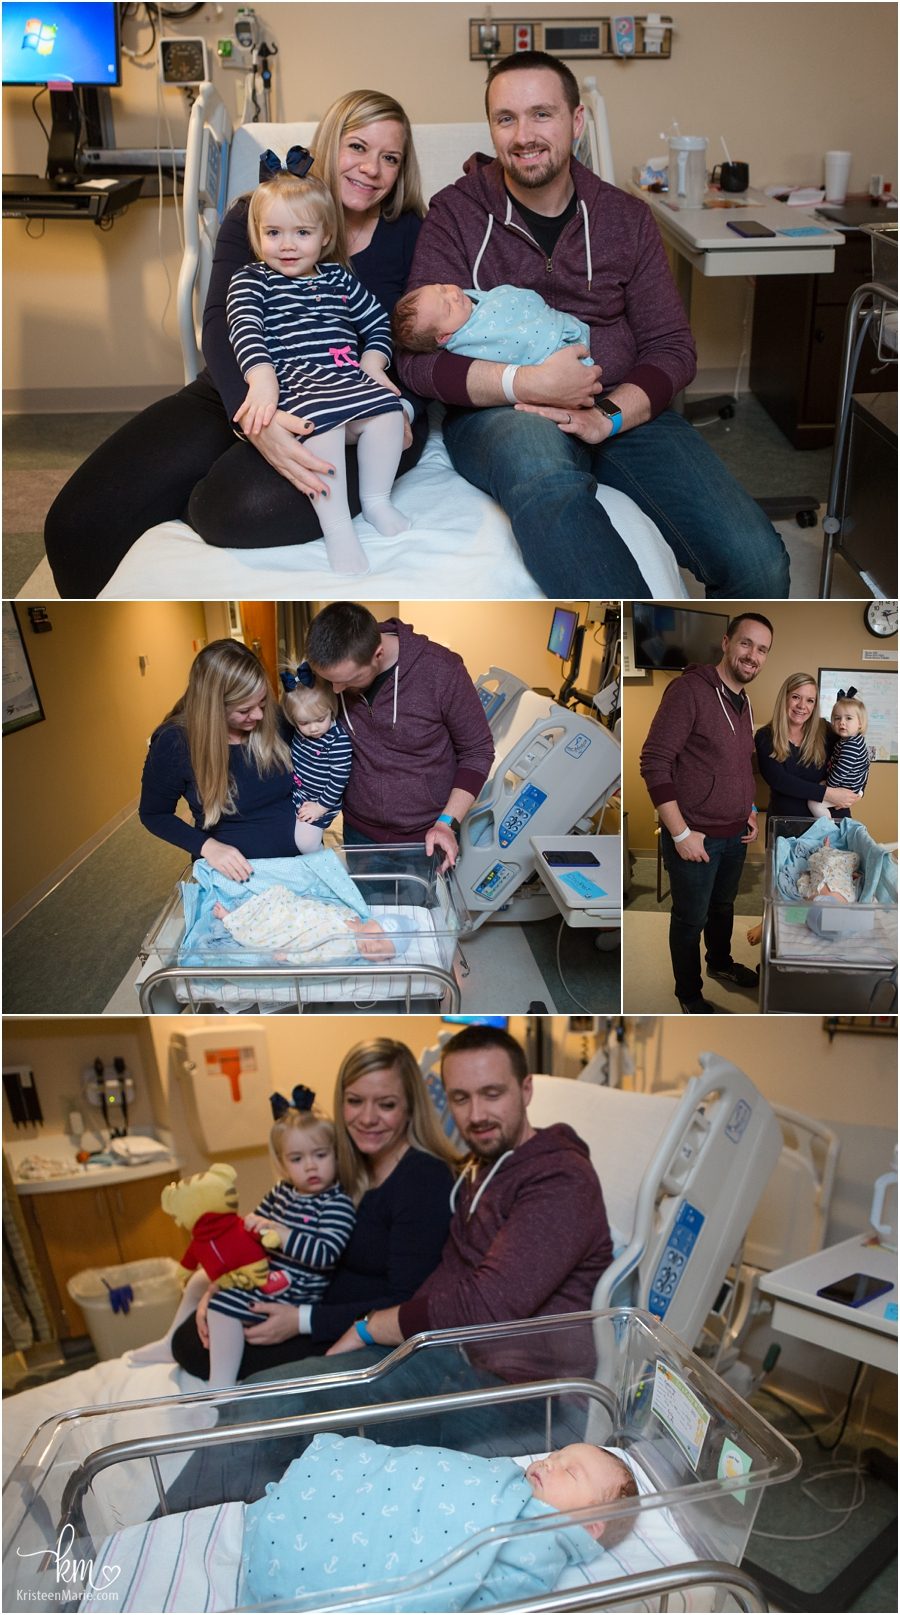 A family of 4 in the hospial after birth of baby